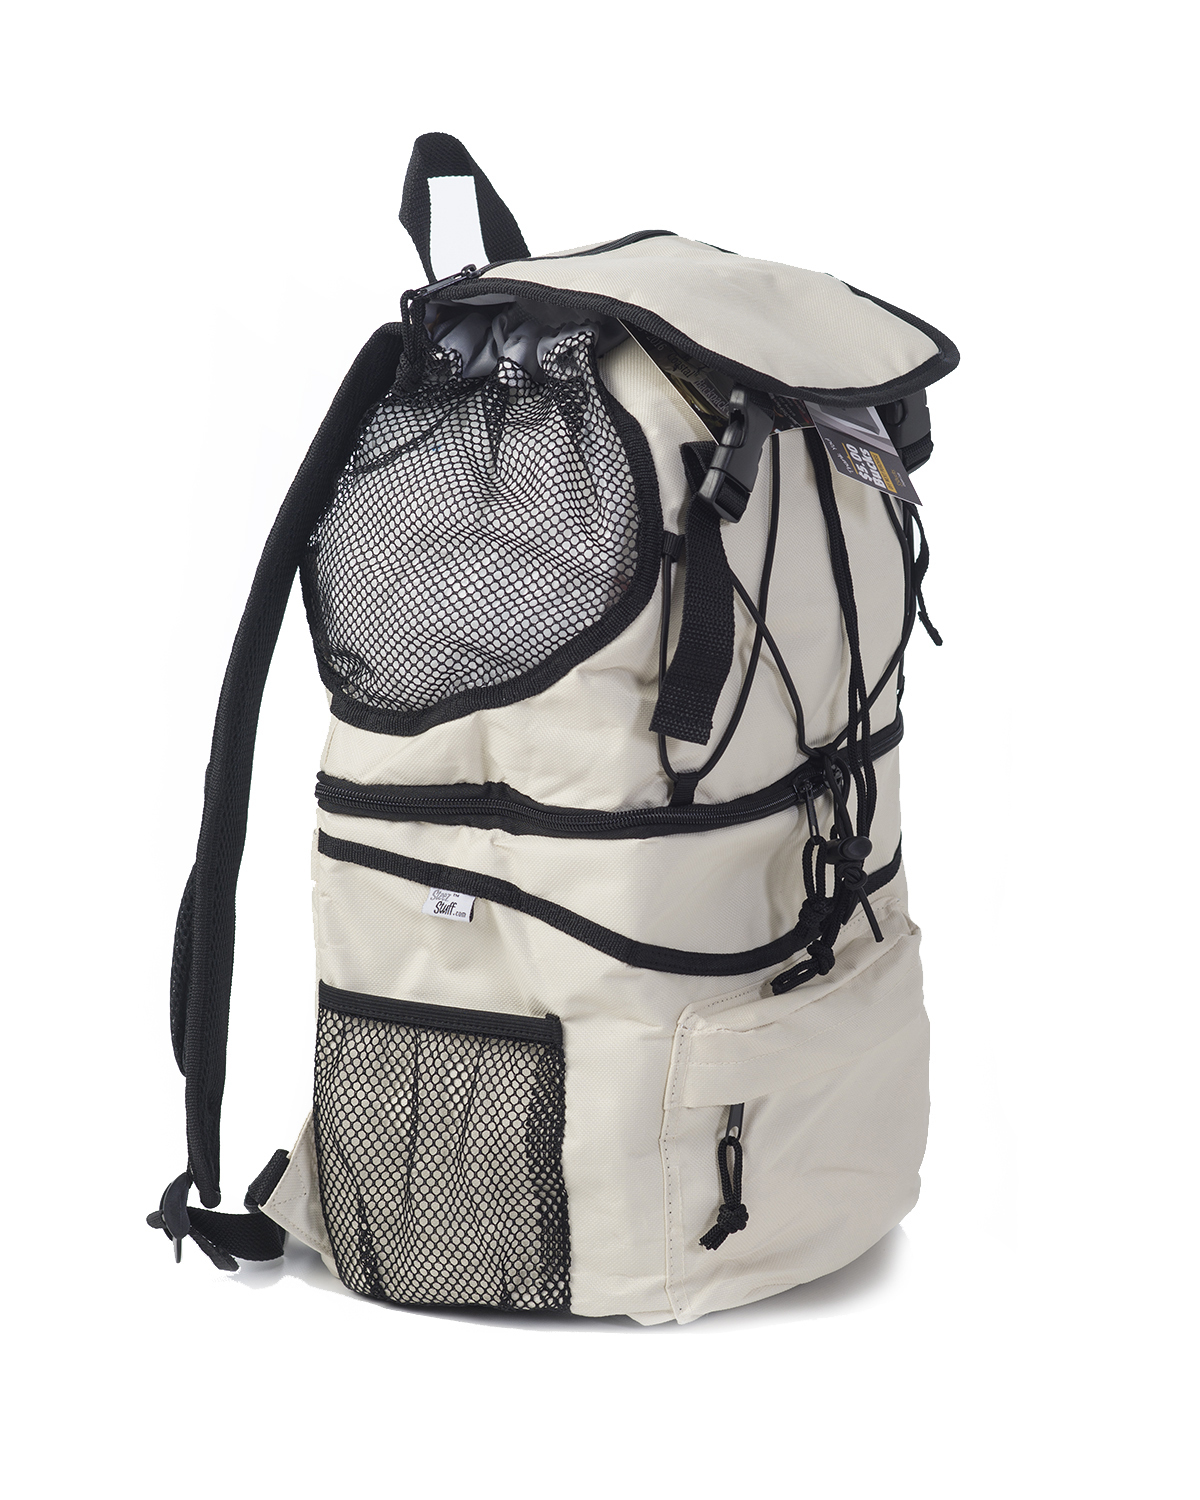 Backpack Cooler For Picnic Time-Beach-Biking-Hiking-School-Sports Events-Black